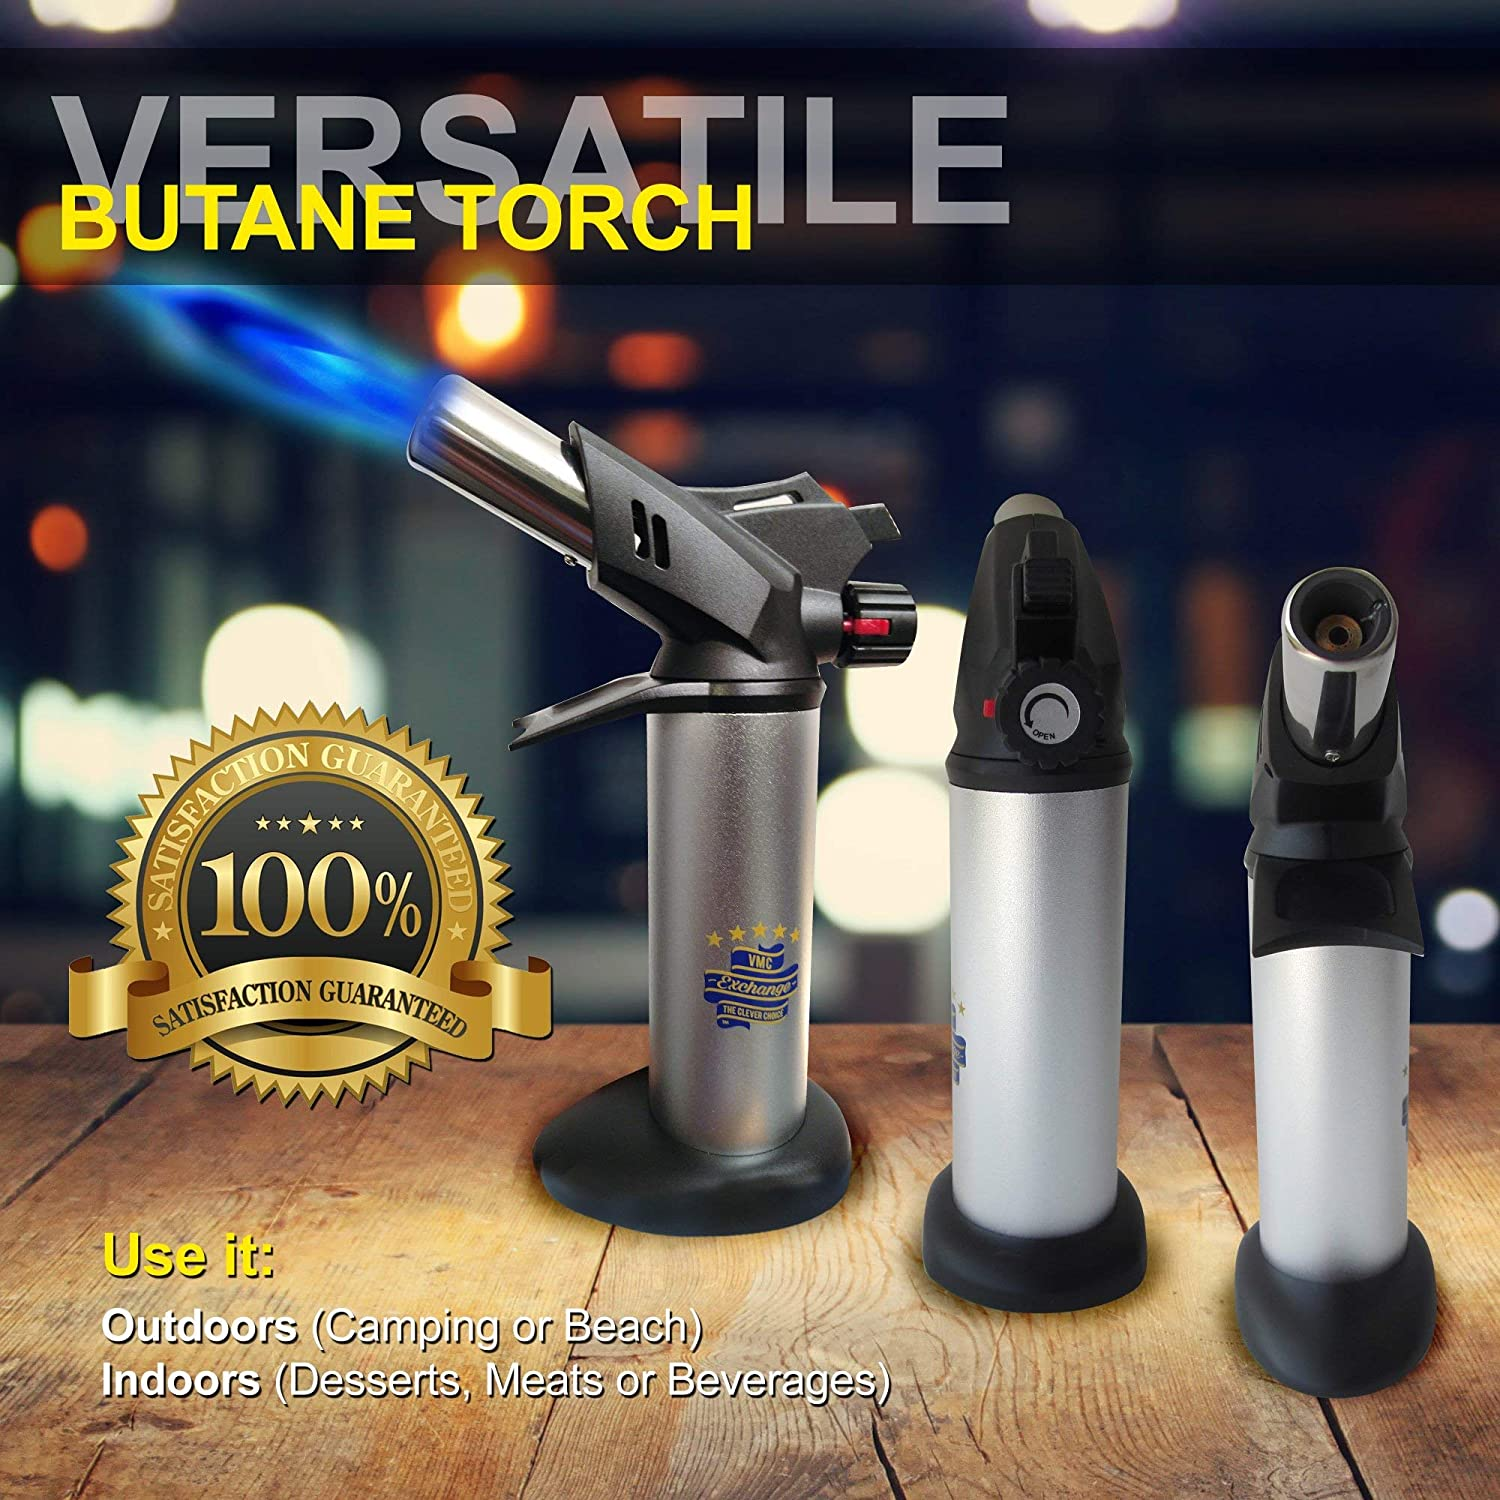 VMC Exchange Professional Butane Torch Safest Refillable Portable Culinary ...